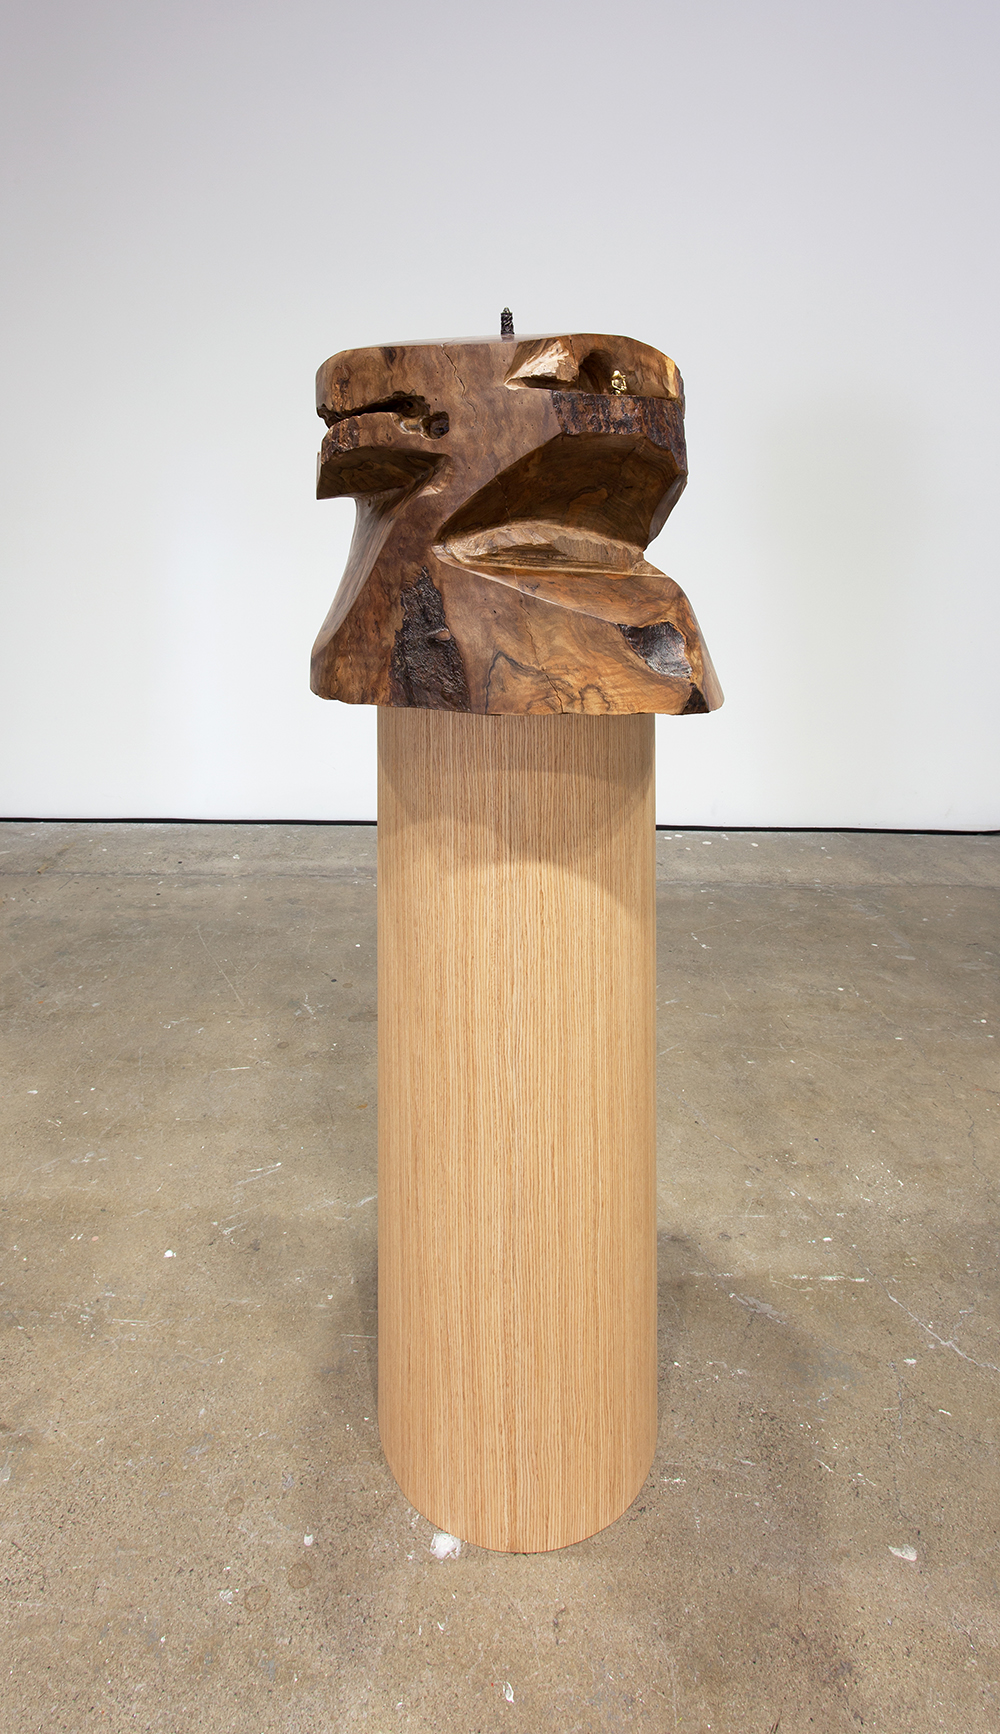 Dewey Ambrosino - Stupa, 2015, California Walnut, Bronze and Brass fetishes, oak veneered pedestal